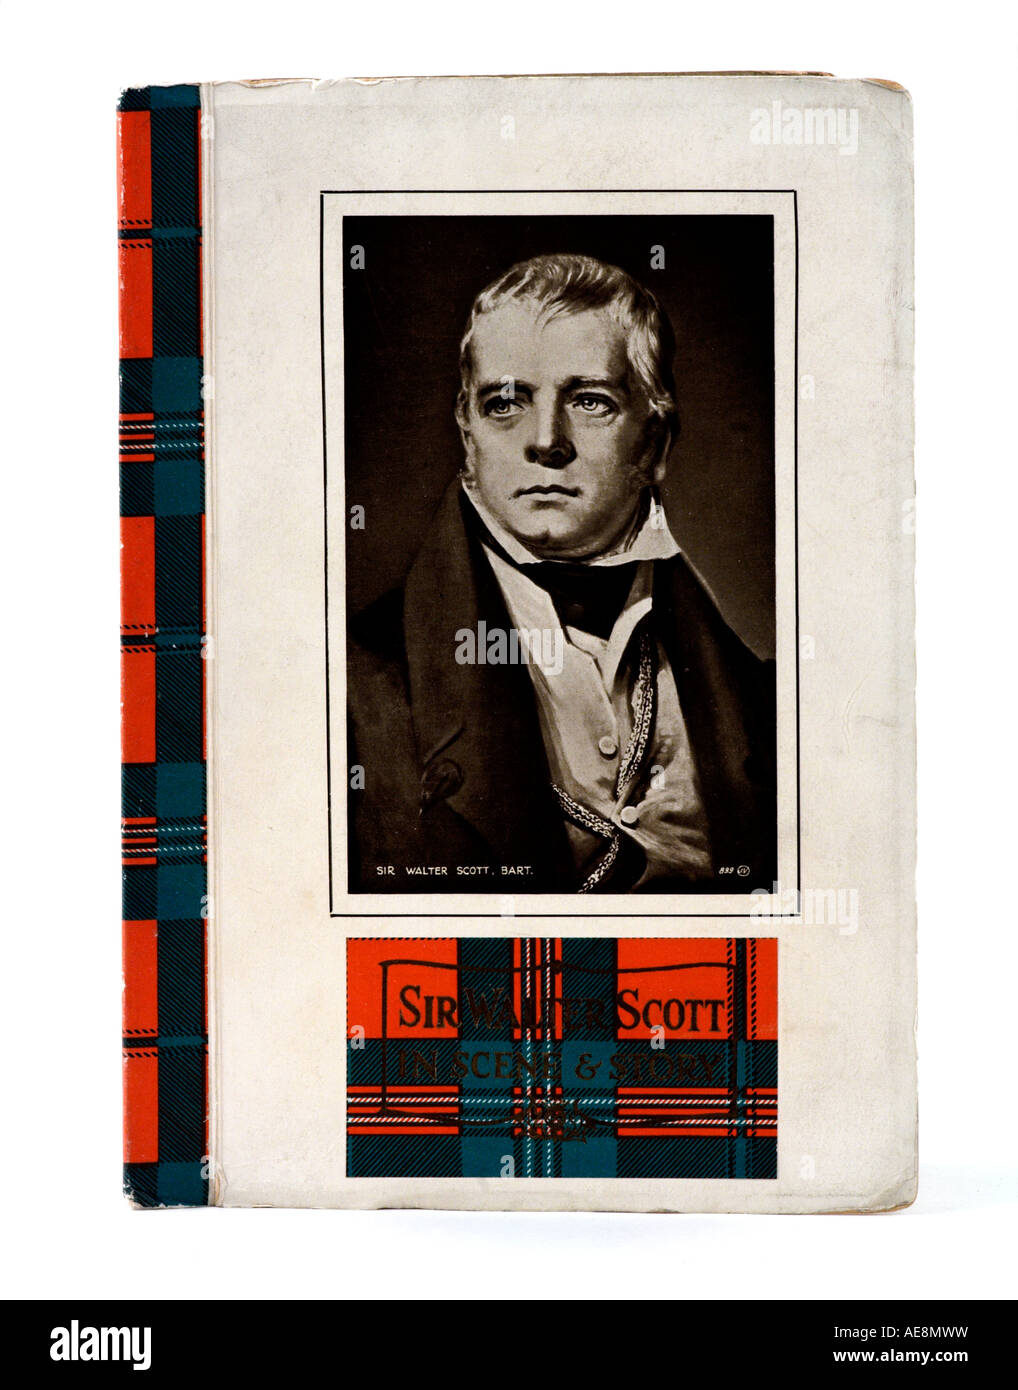 Sir Walter Scott Centenary Book 1932 EDITORIAL USE ONLY - Stock Image